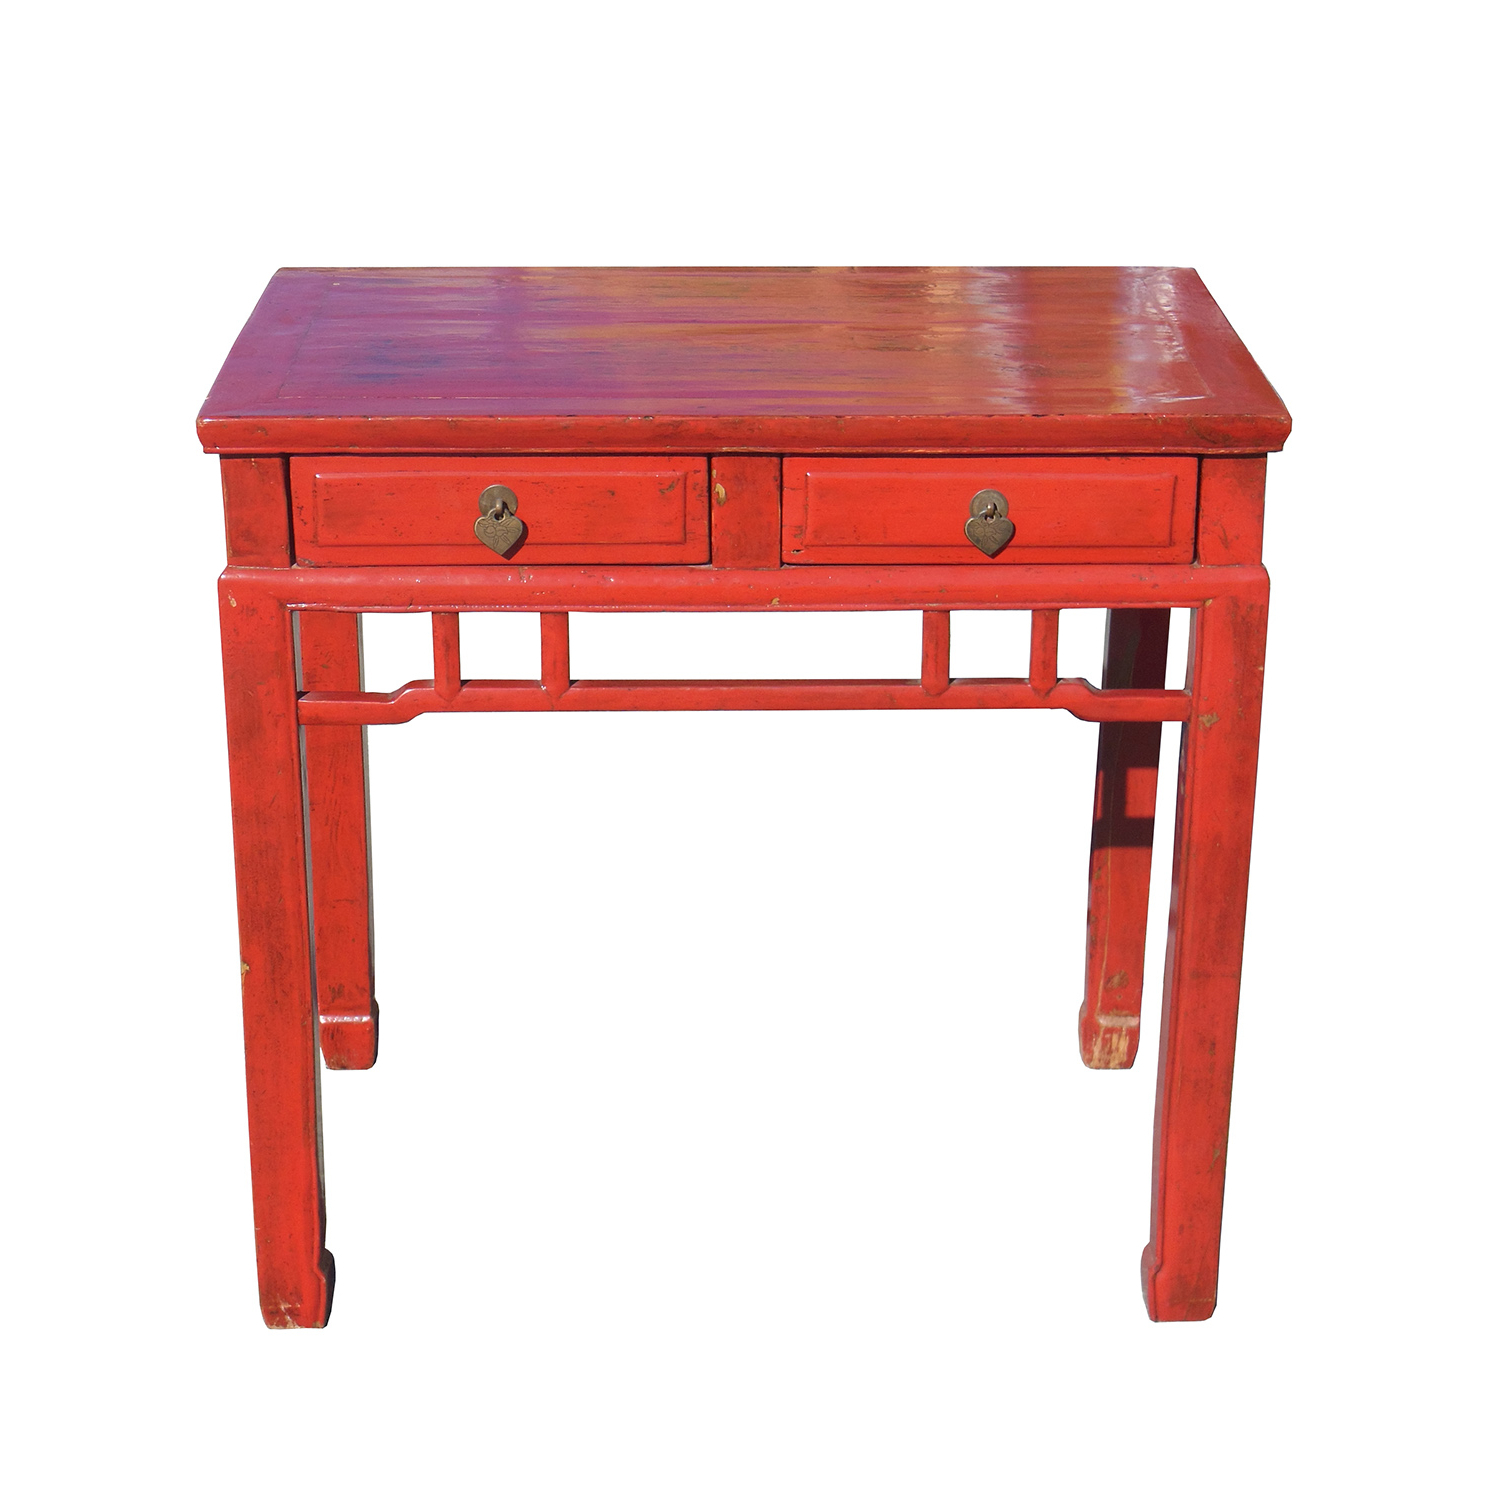 Shen's Gallery | Chinese Antiques | Side Table & Square Table | Bay Area Intended For Layered Wood Small Square Console Tables (View 20 of 20)